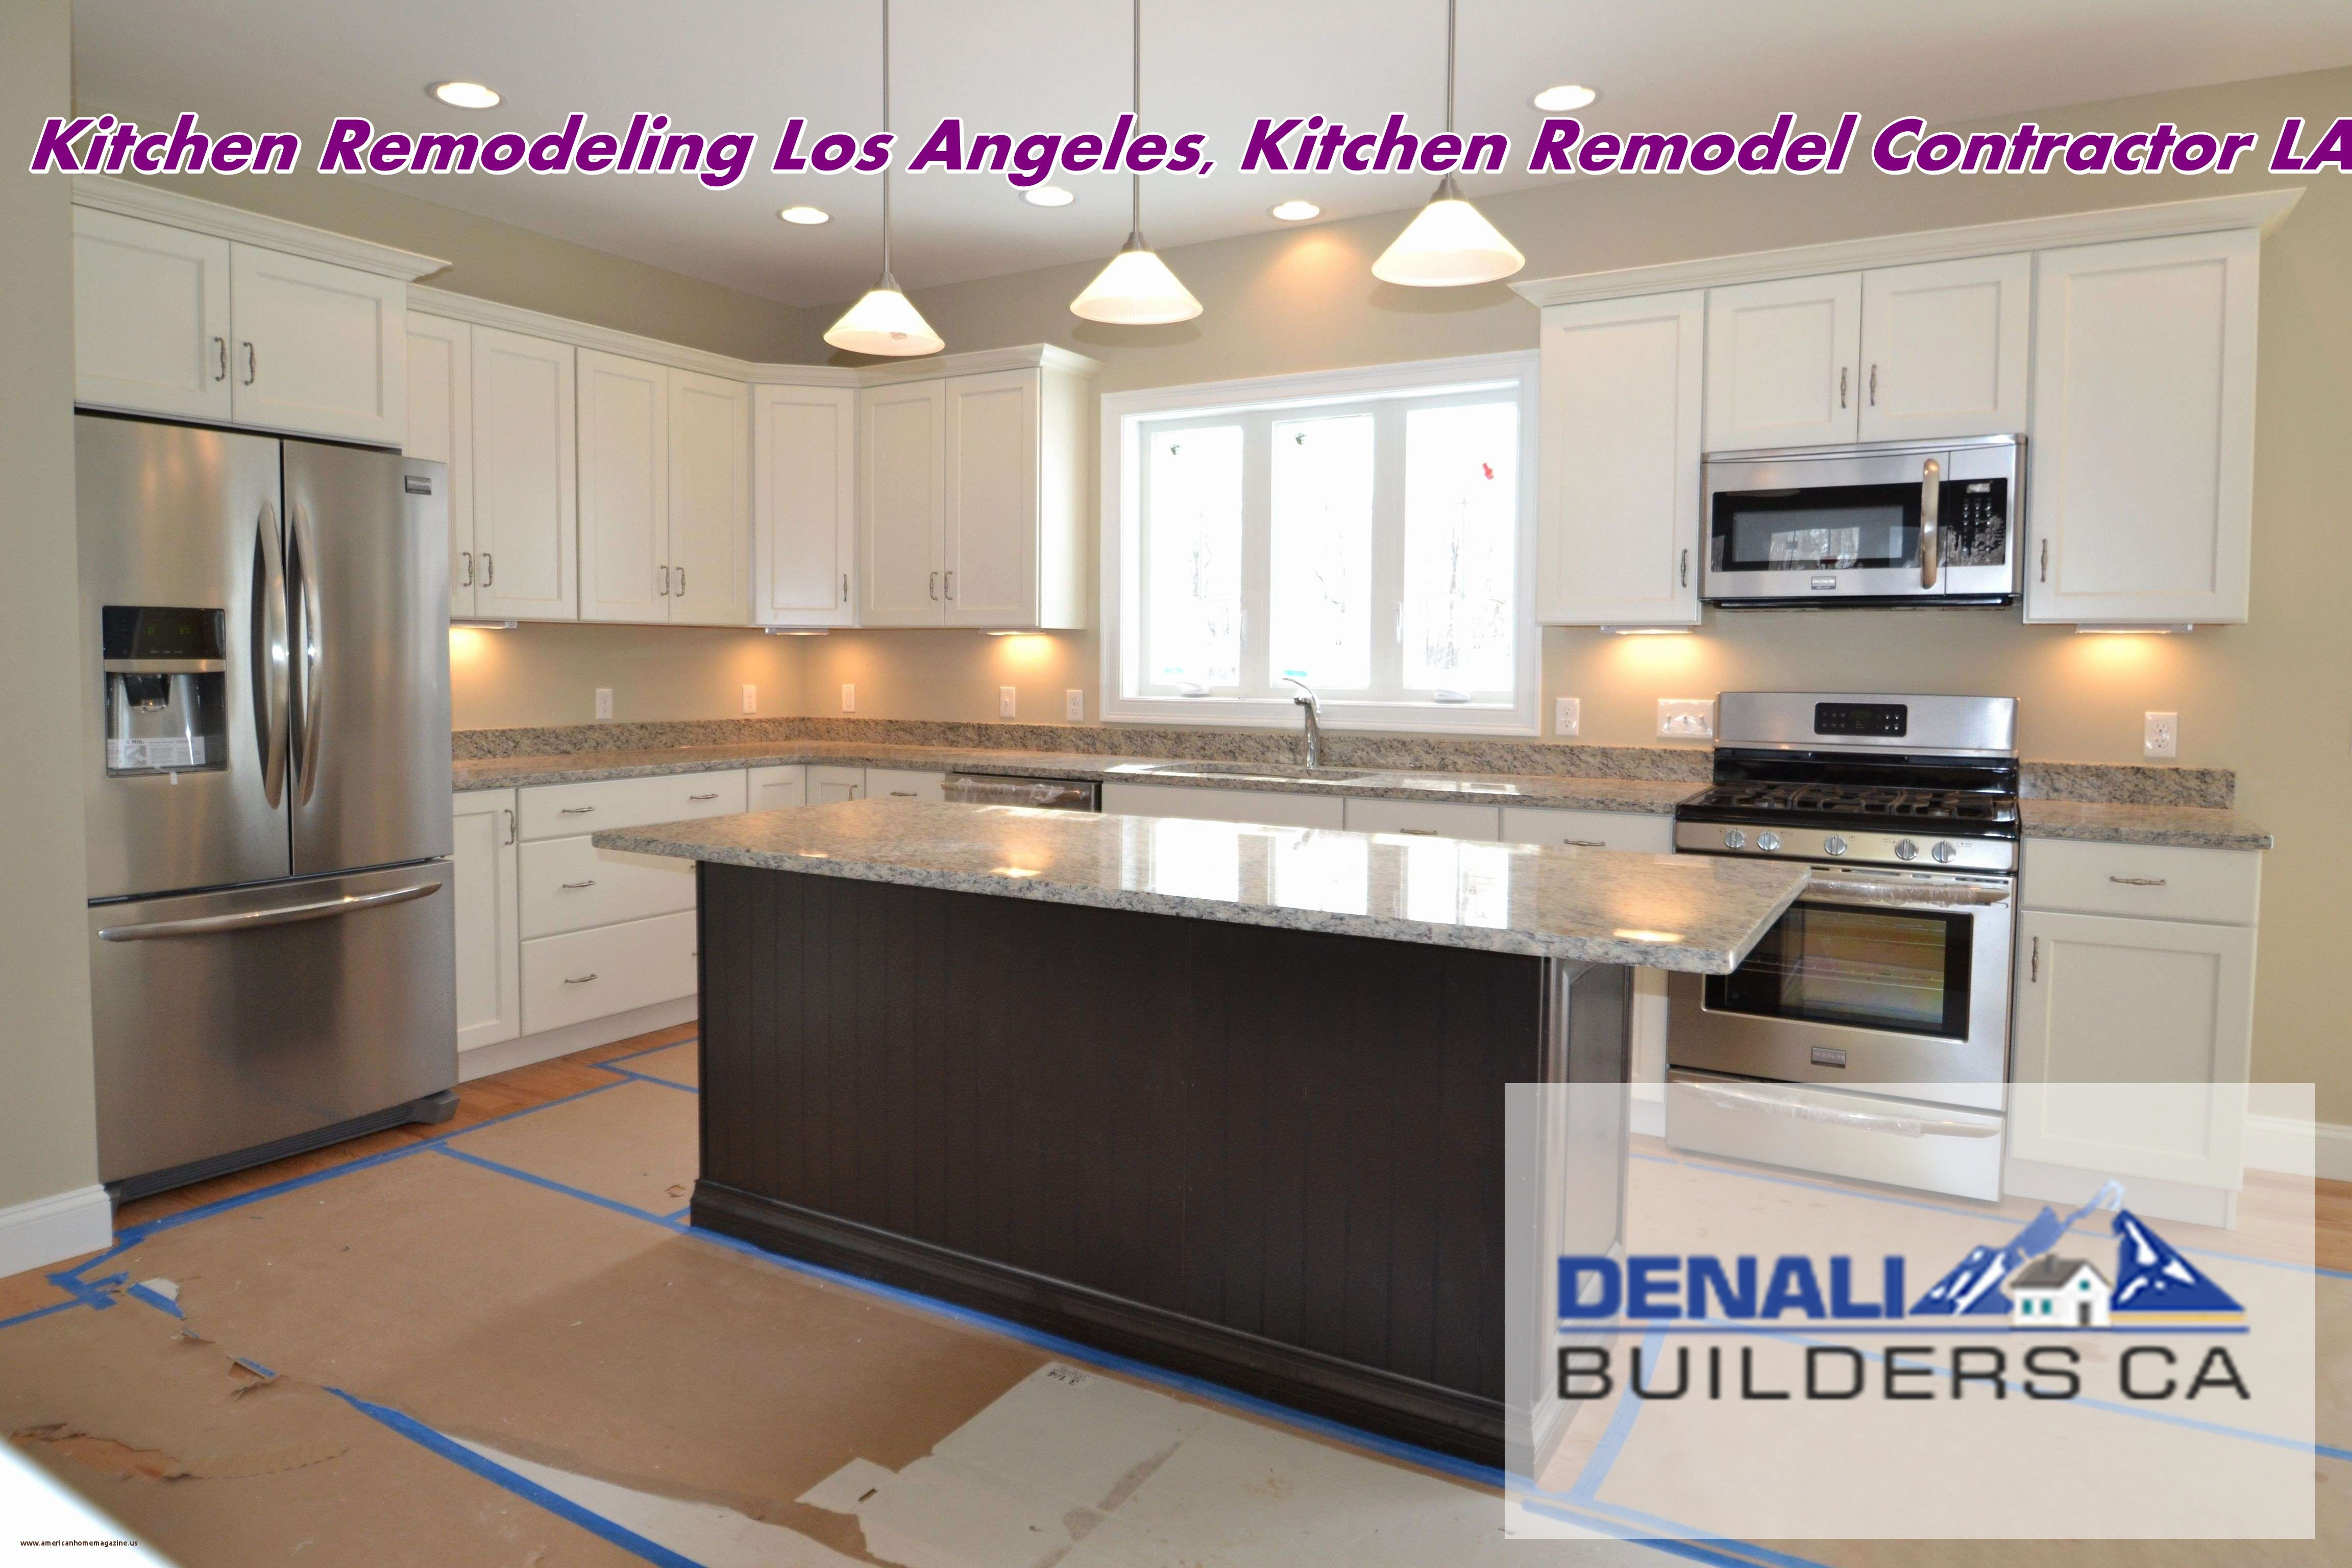 Kitchen Remodeling Los Angeles Kitchen Remodel Contractor La Beautiful Kitchen Cabinets Galley Kitchen Design Large Kitchen Layouts